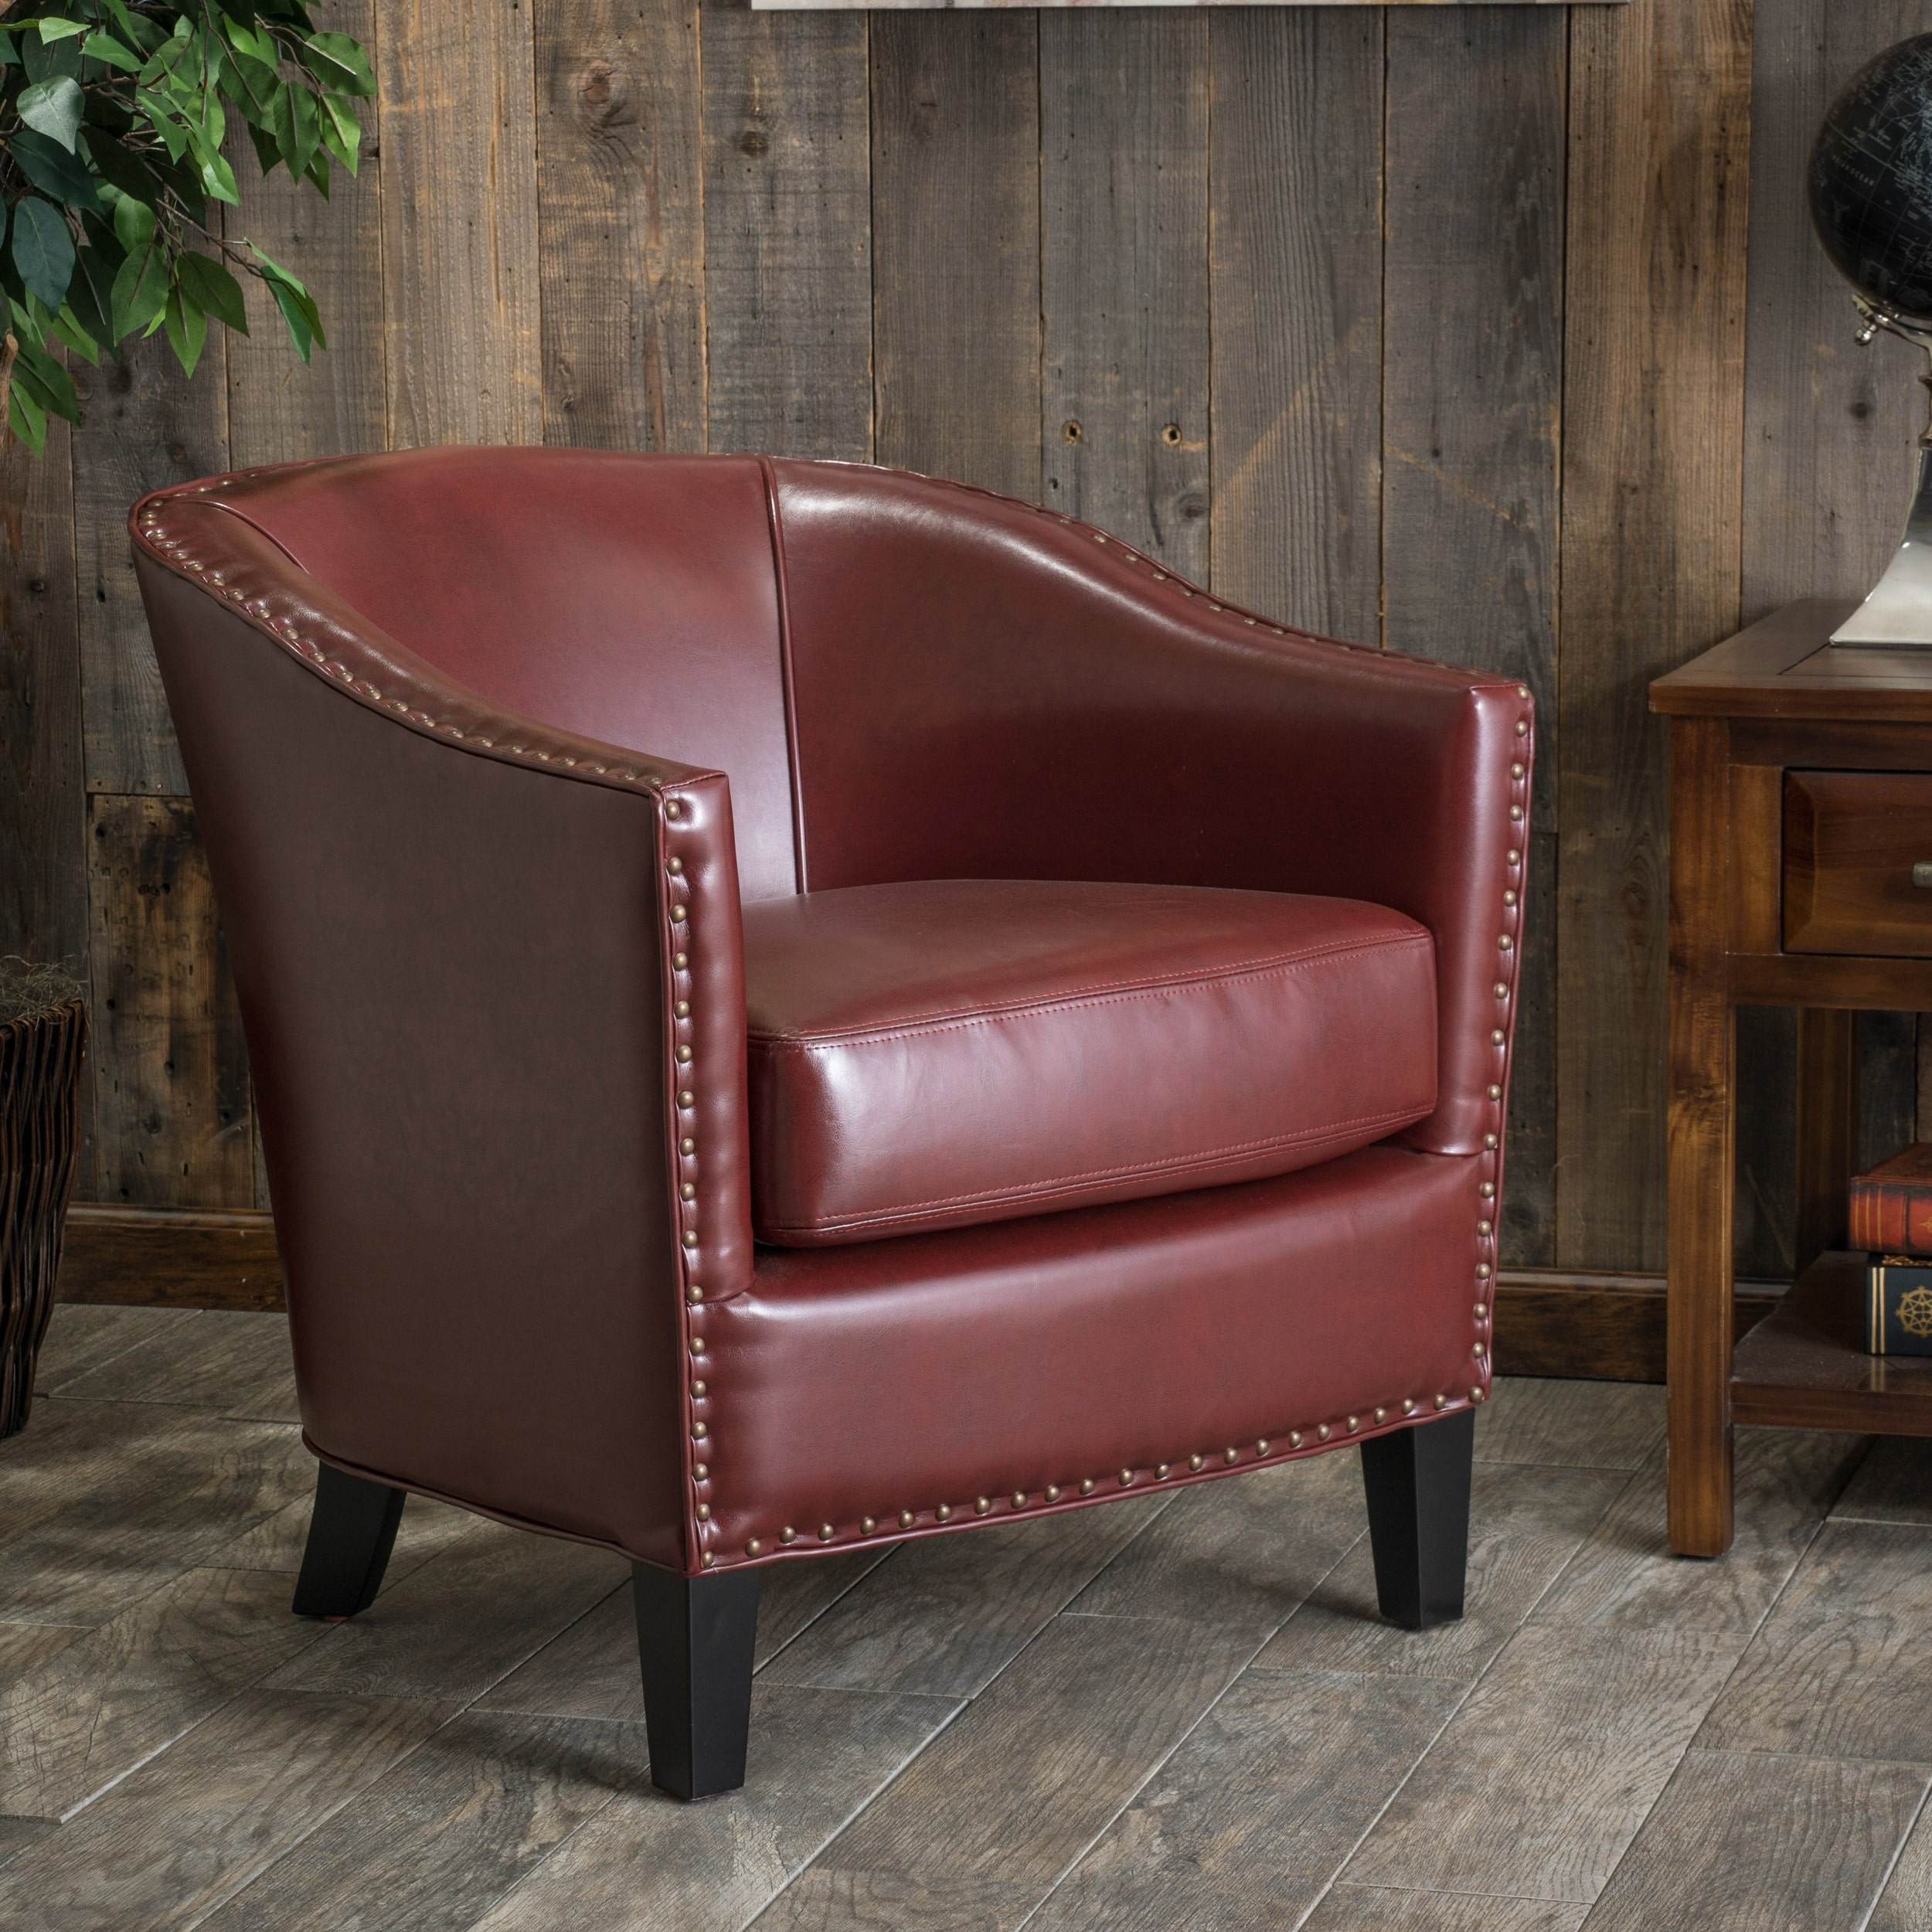 Christopher Knight Home Austin Oxblood Red Bonded Leather Club Chair by by Overstock